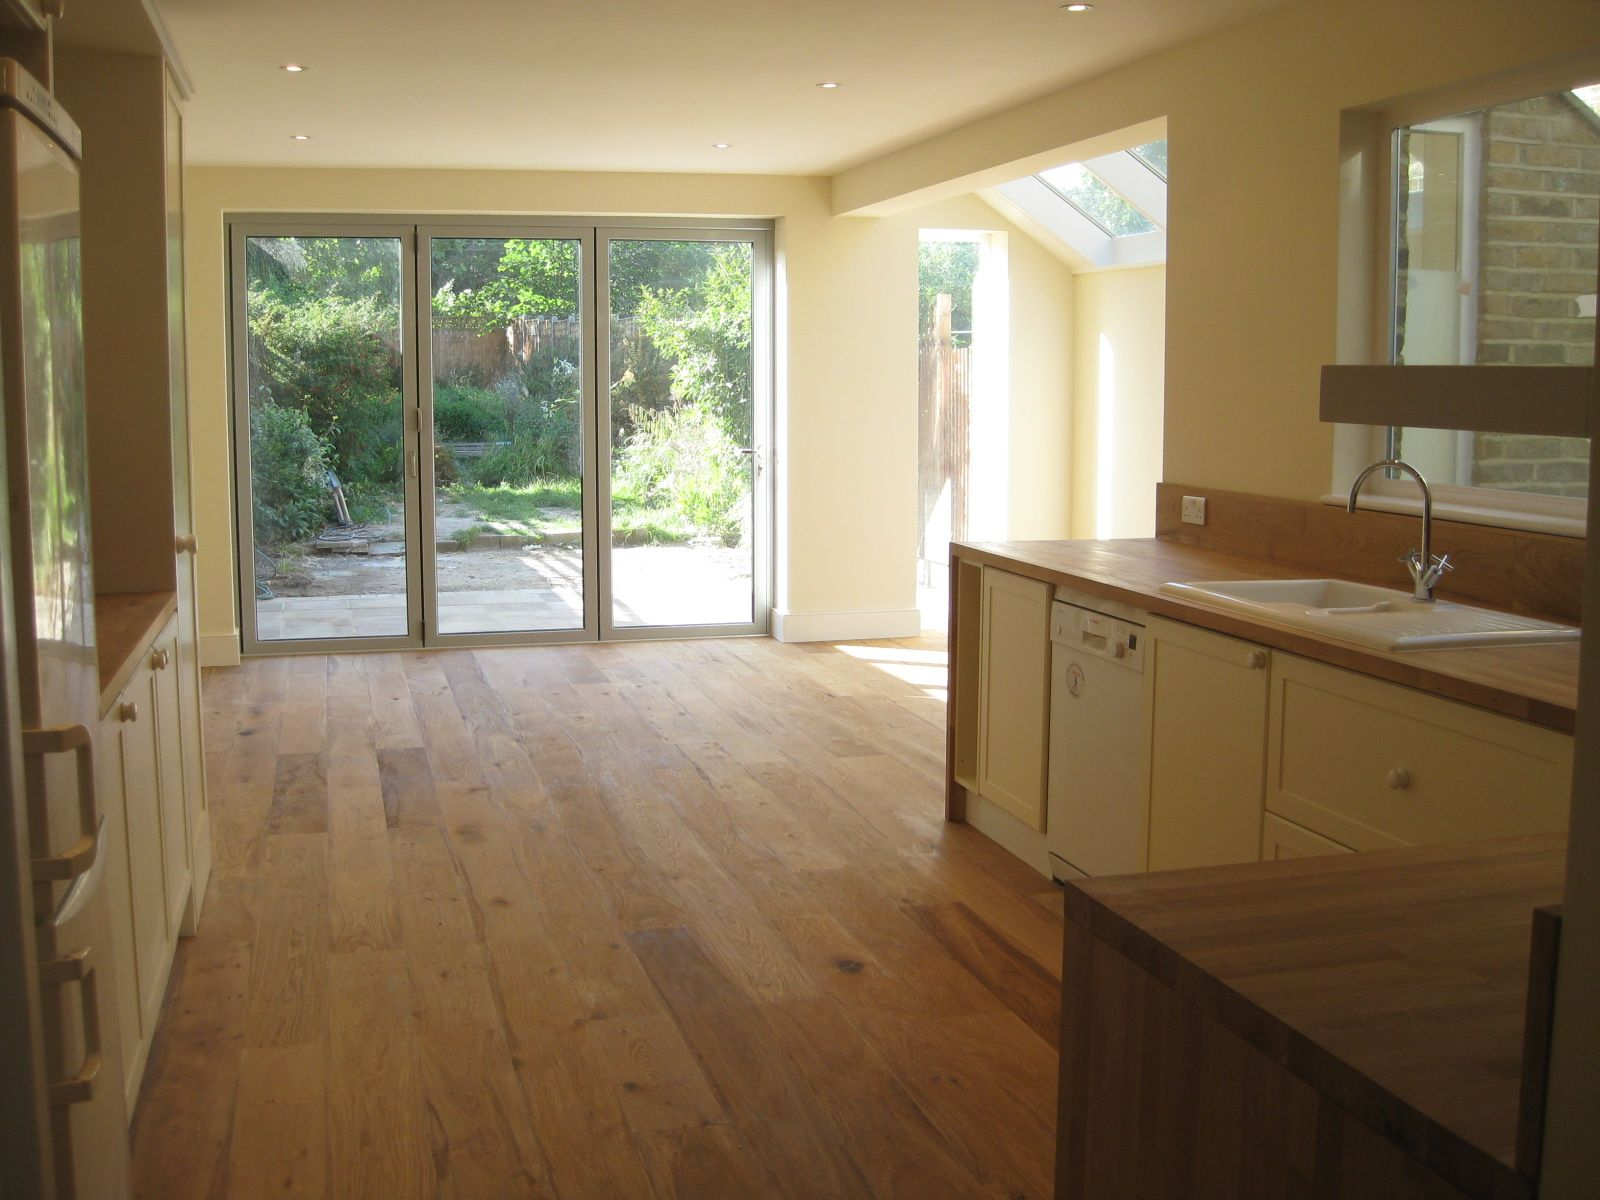 Solid Wood Flooring, As The Name Suggests, Is Made From